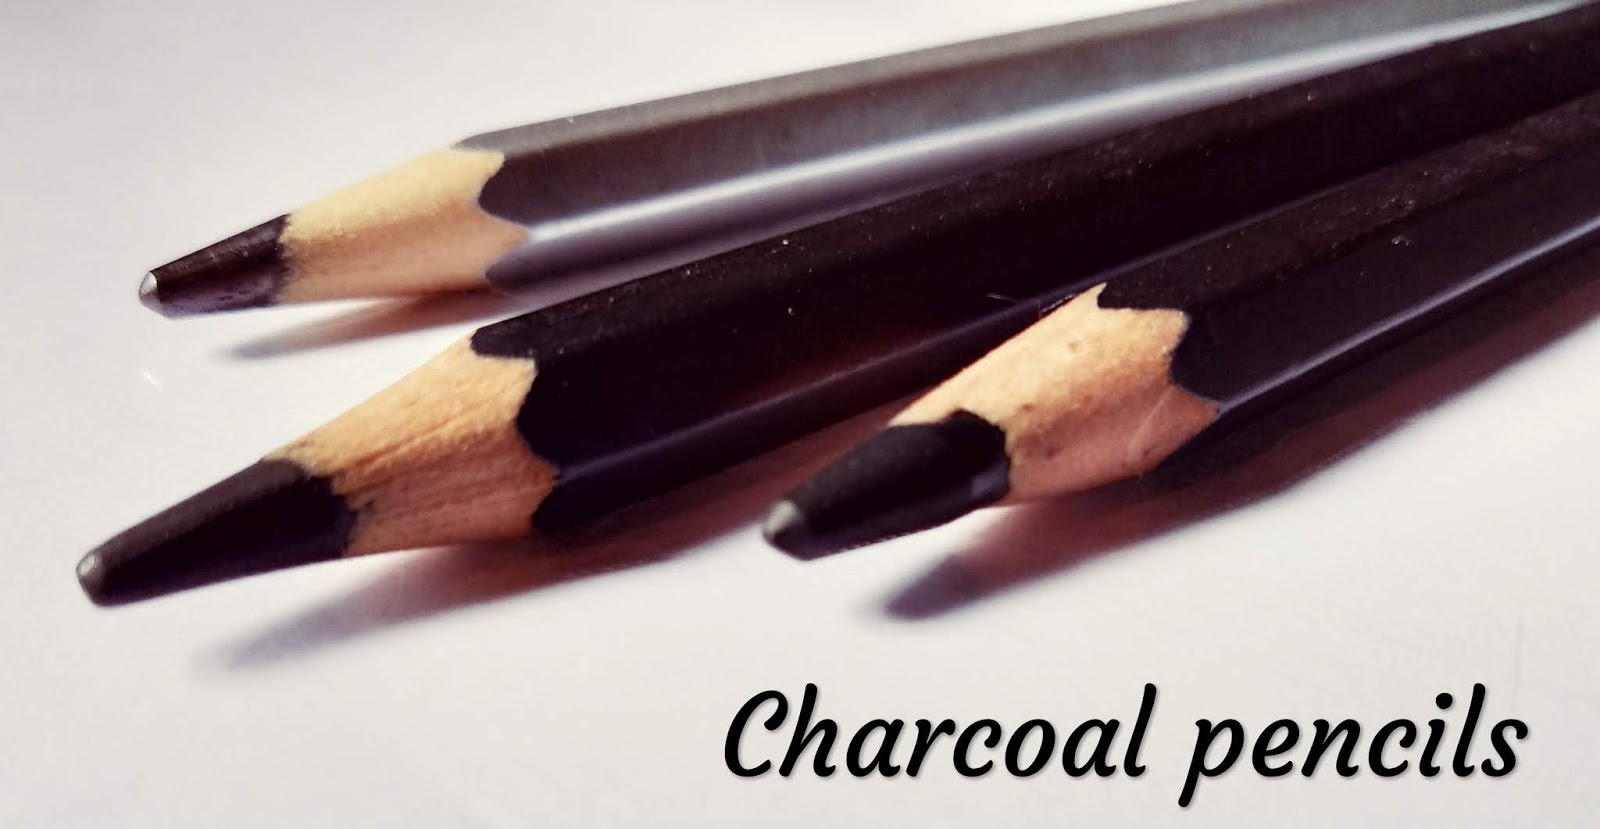 Charcoal pencils drawing tools drawing tools for begginers best sketch artist charcoal pencils